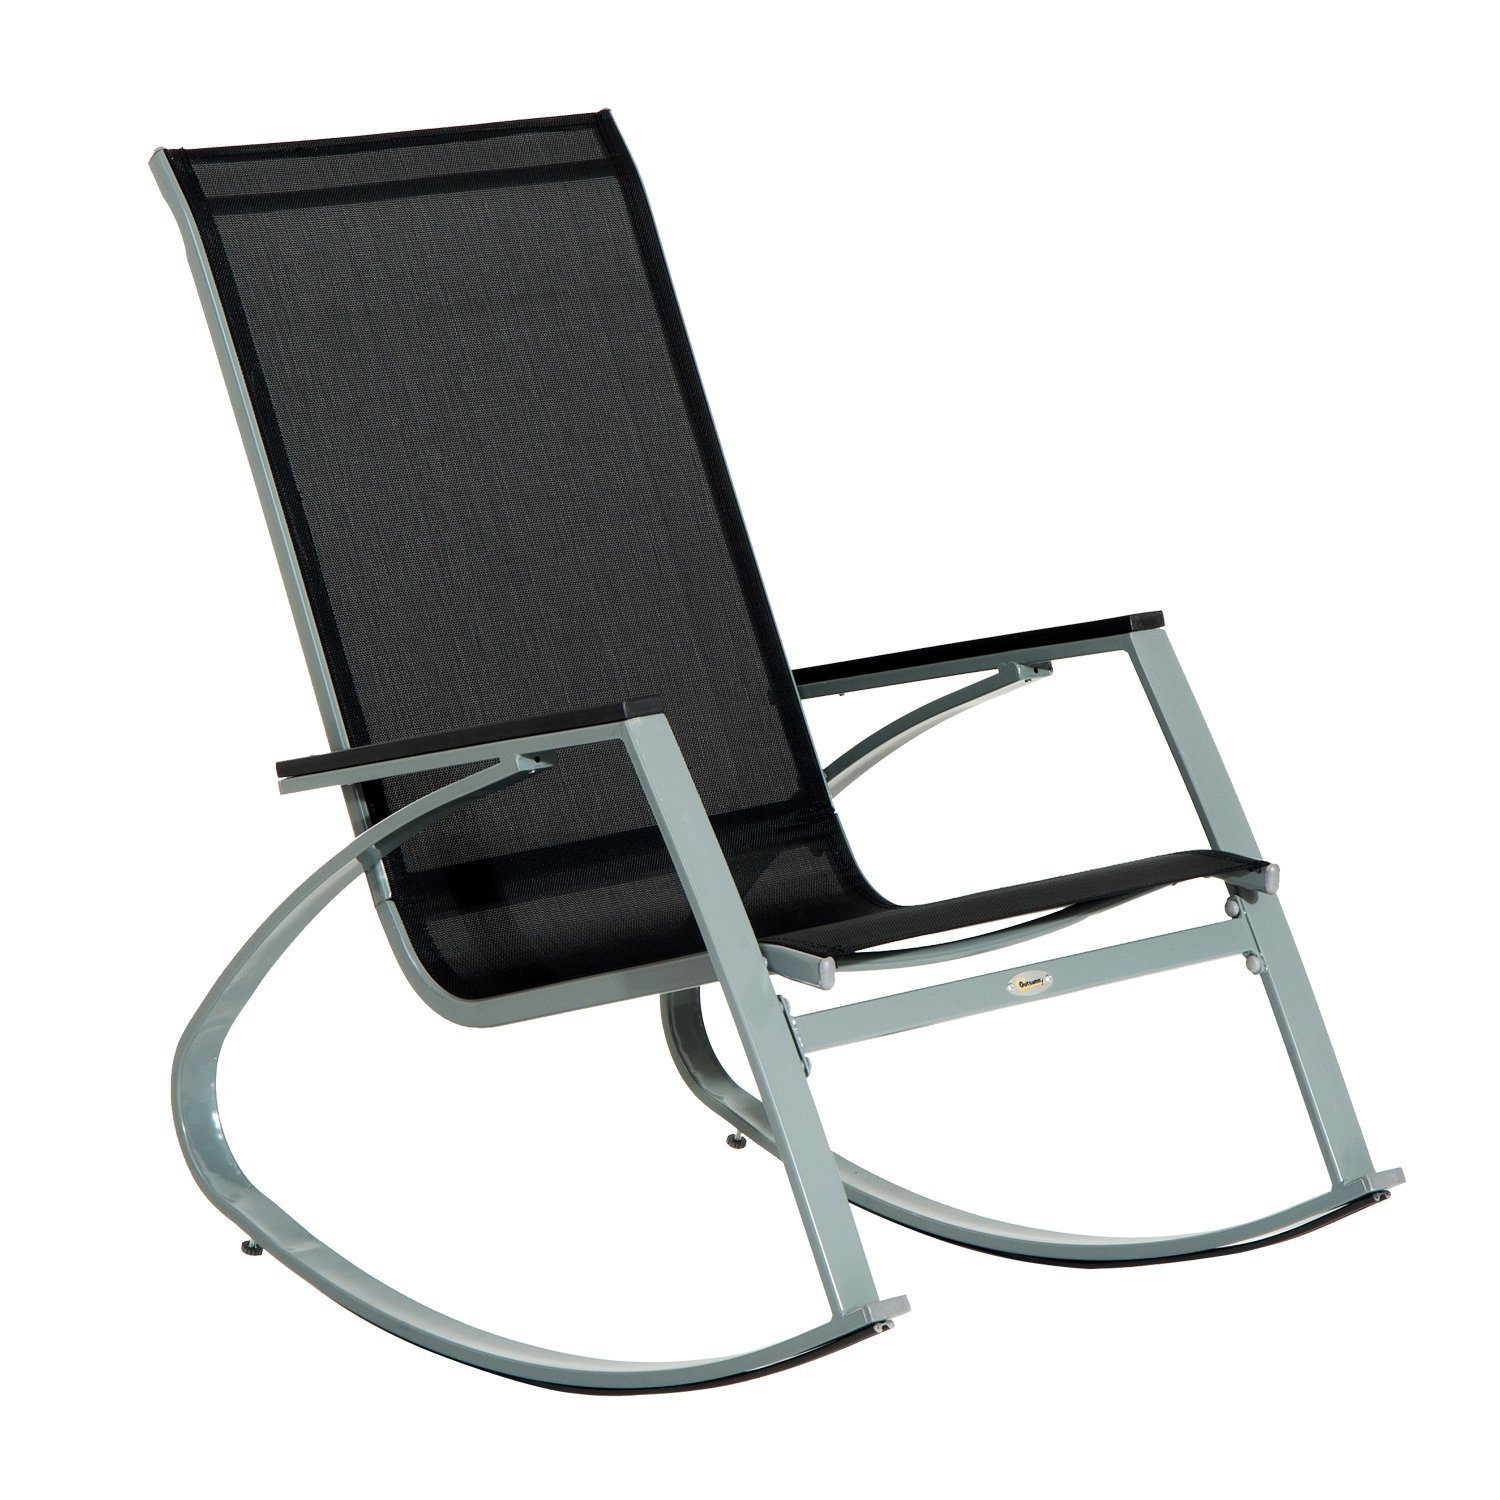 Amazon.com : Outsunny Outdoor Modern Front Porch Patio Rocking Sling Chair  - Black/Silver : Garden & Outdoor - Amazon.com : Outsunny Outdoor Modern Front Porch Patio Rocking Sling